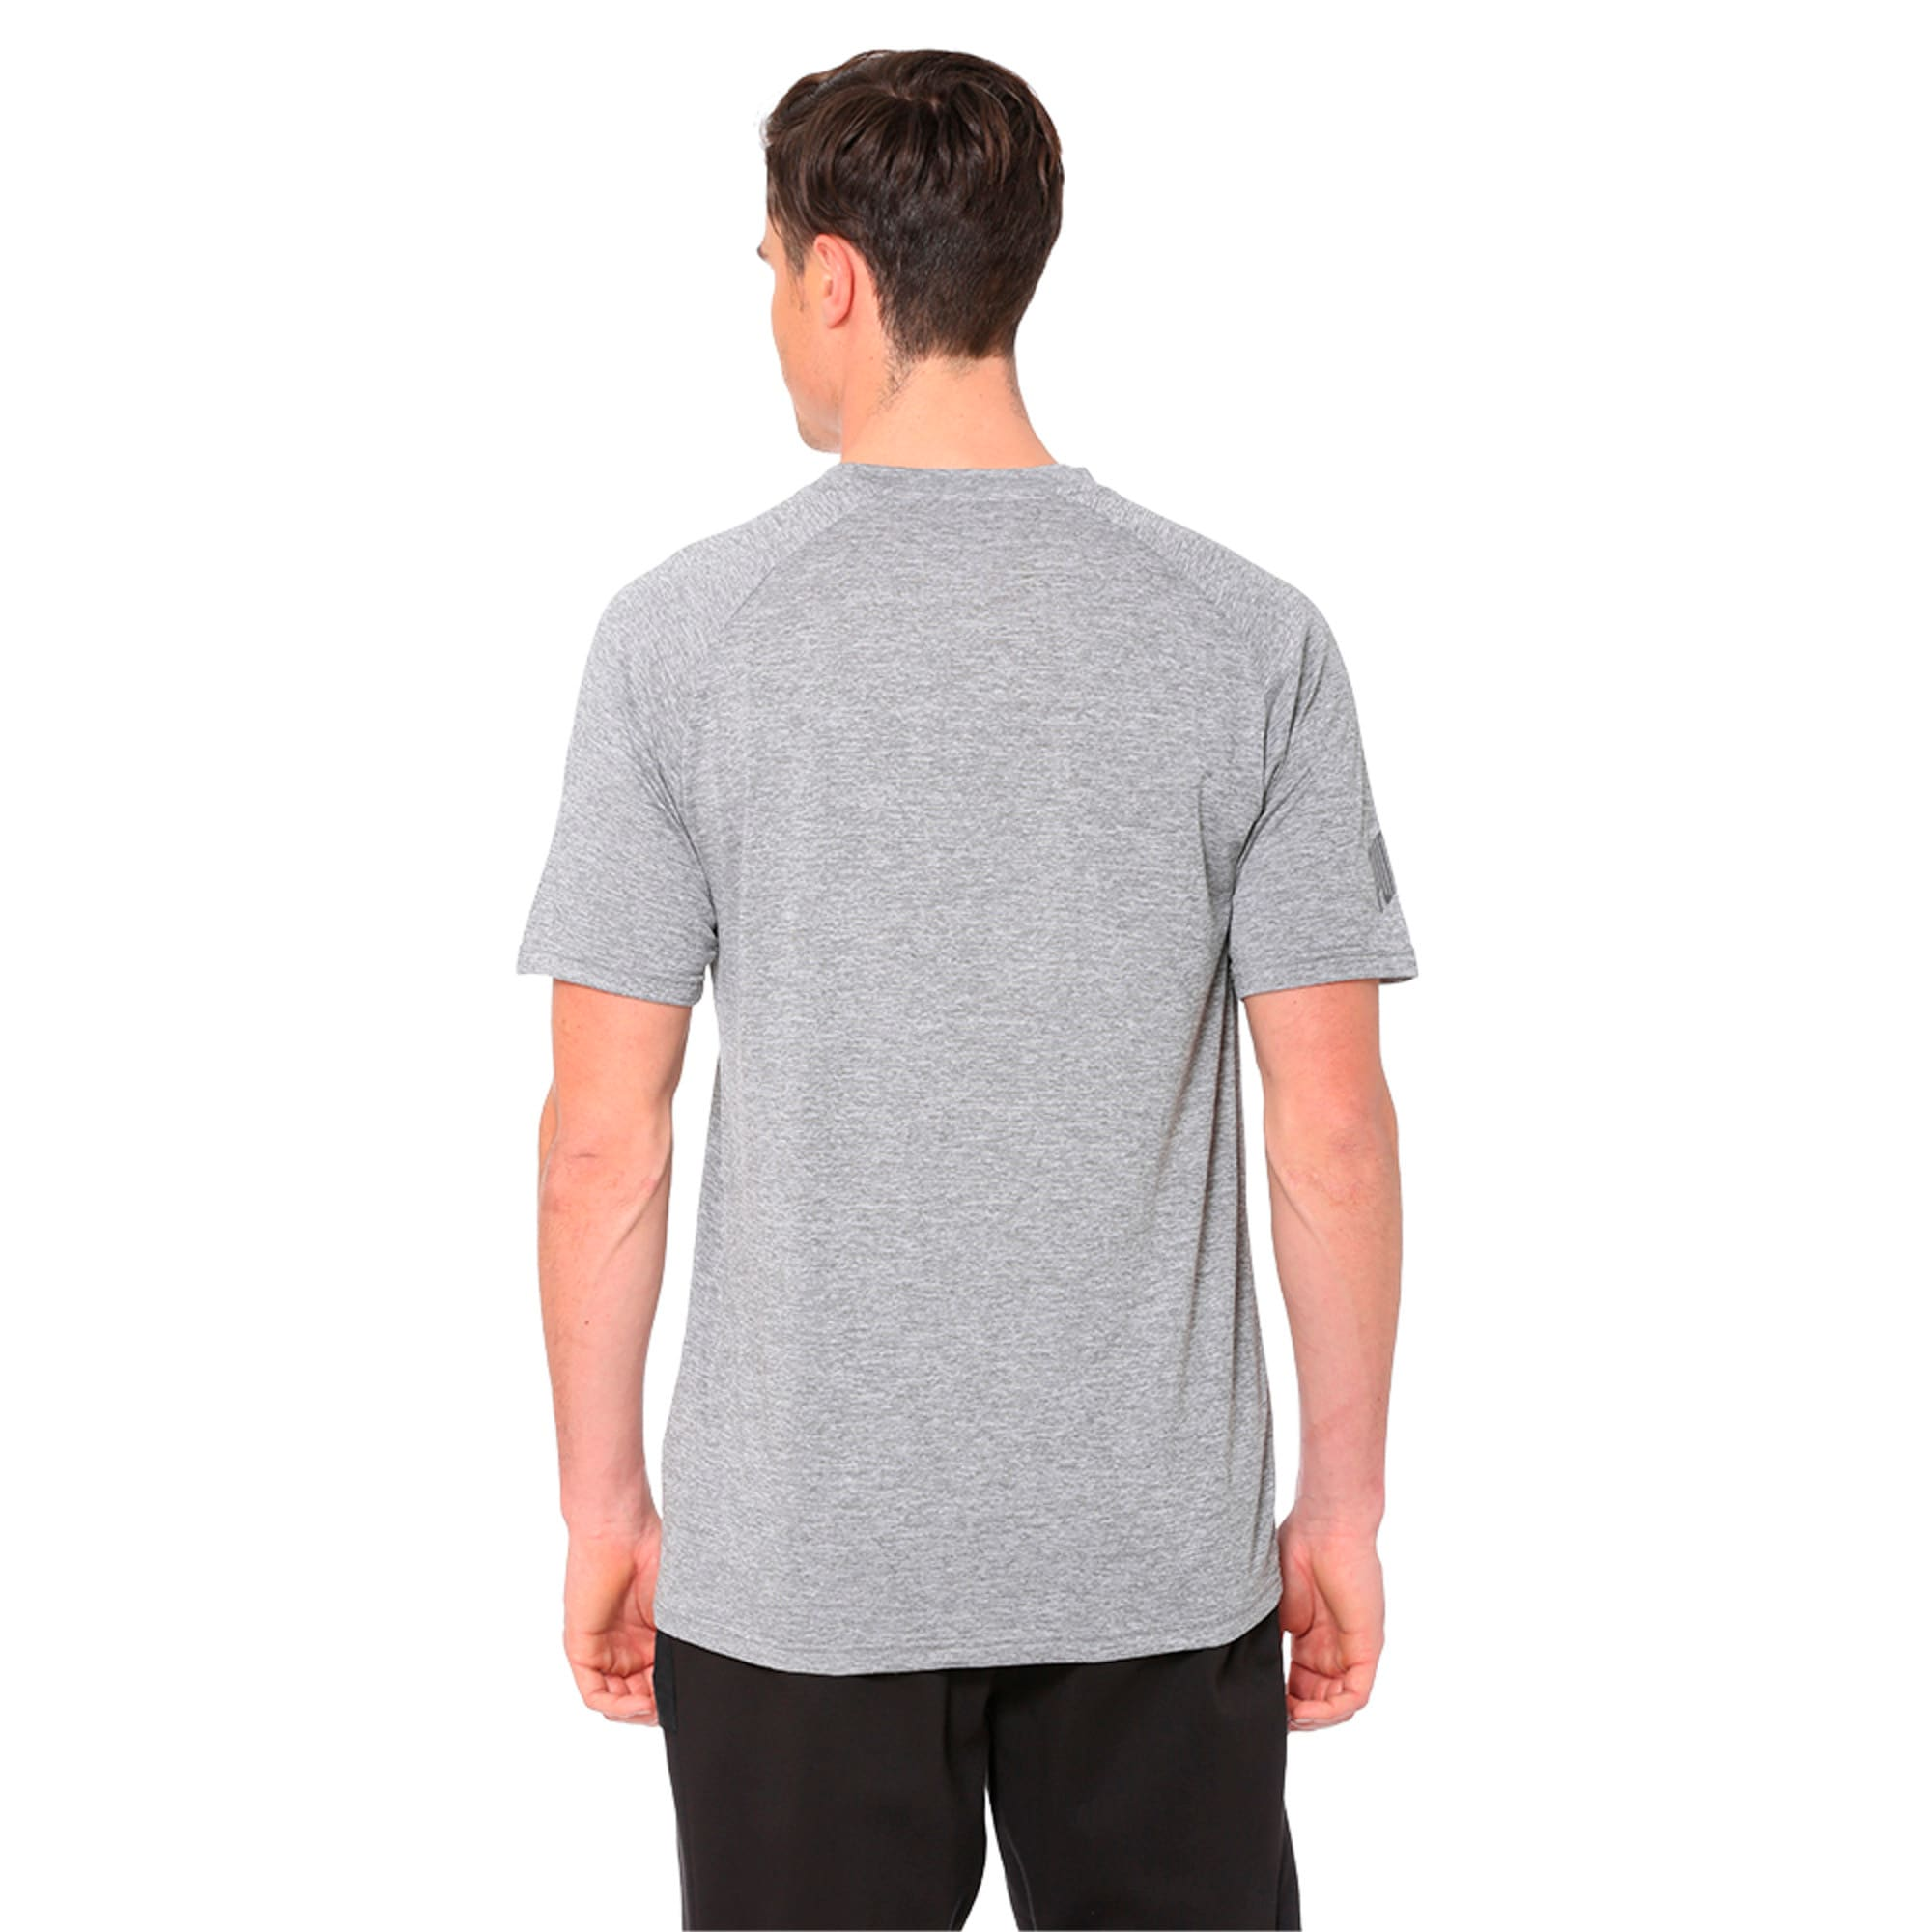 Thumbnail 2 of The CAT Heather Men's Training Tee, Charcoal Gray Heather, medium-IND